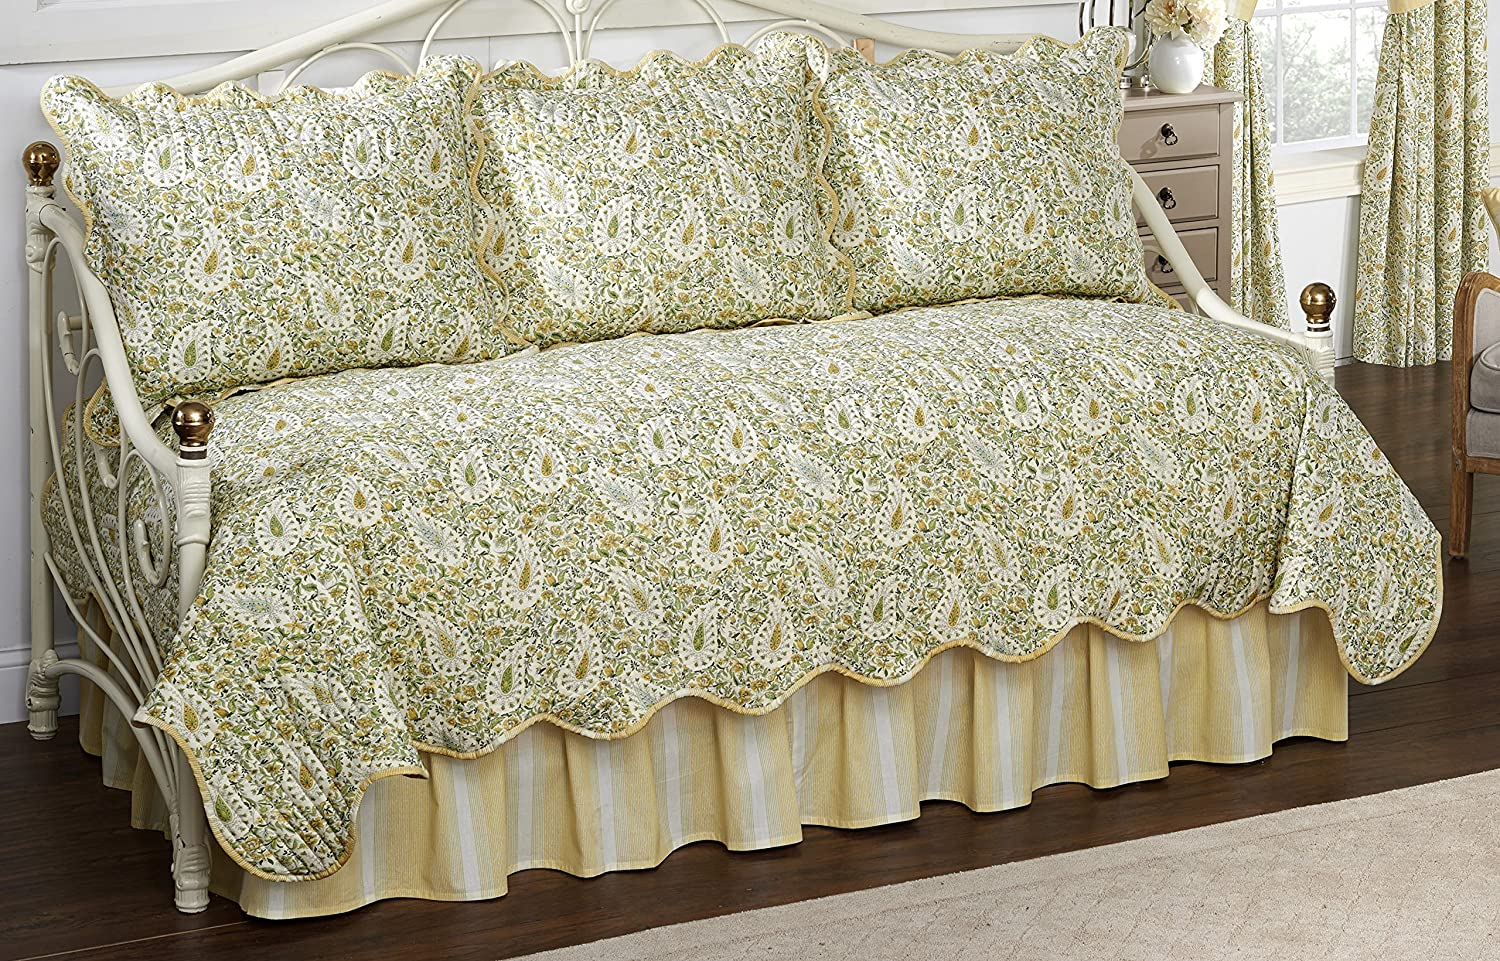 Waverly 15551105X054SPR Paisley Verveine 105-Inch by 54-Inch Daybed Reversible Quilt Set, Spring Ellery Homestyles